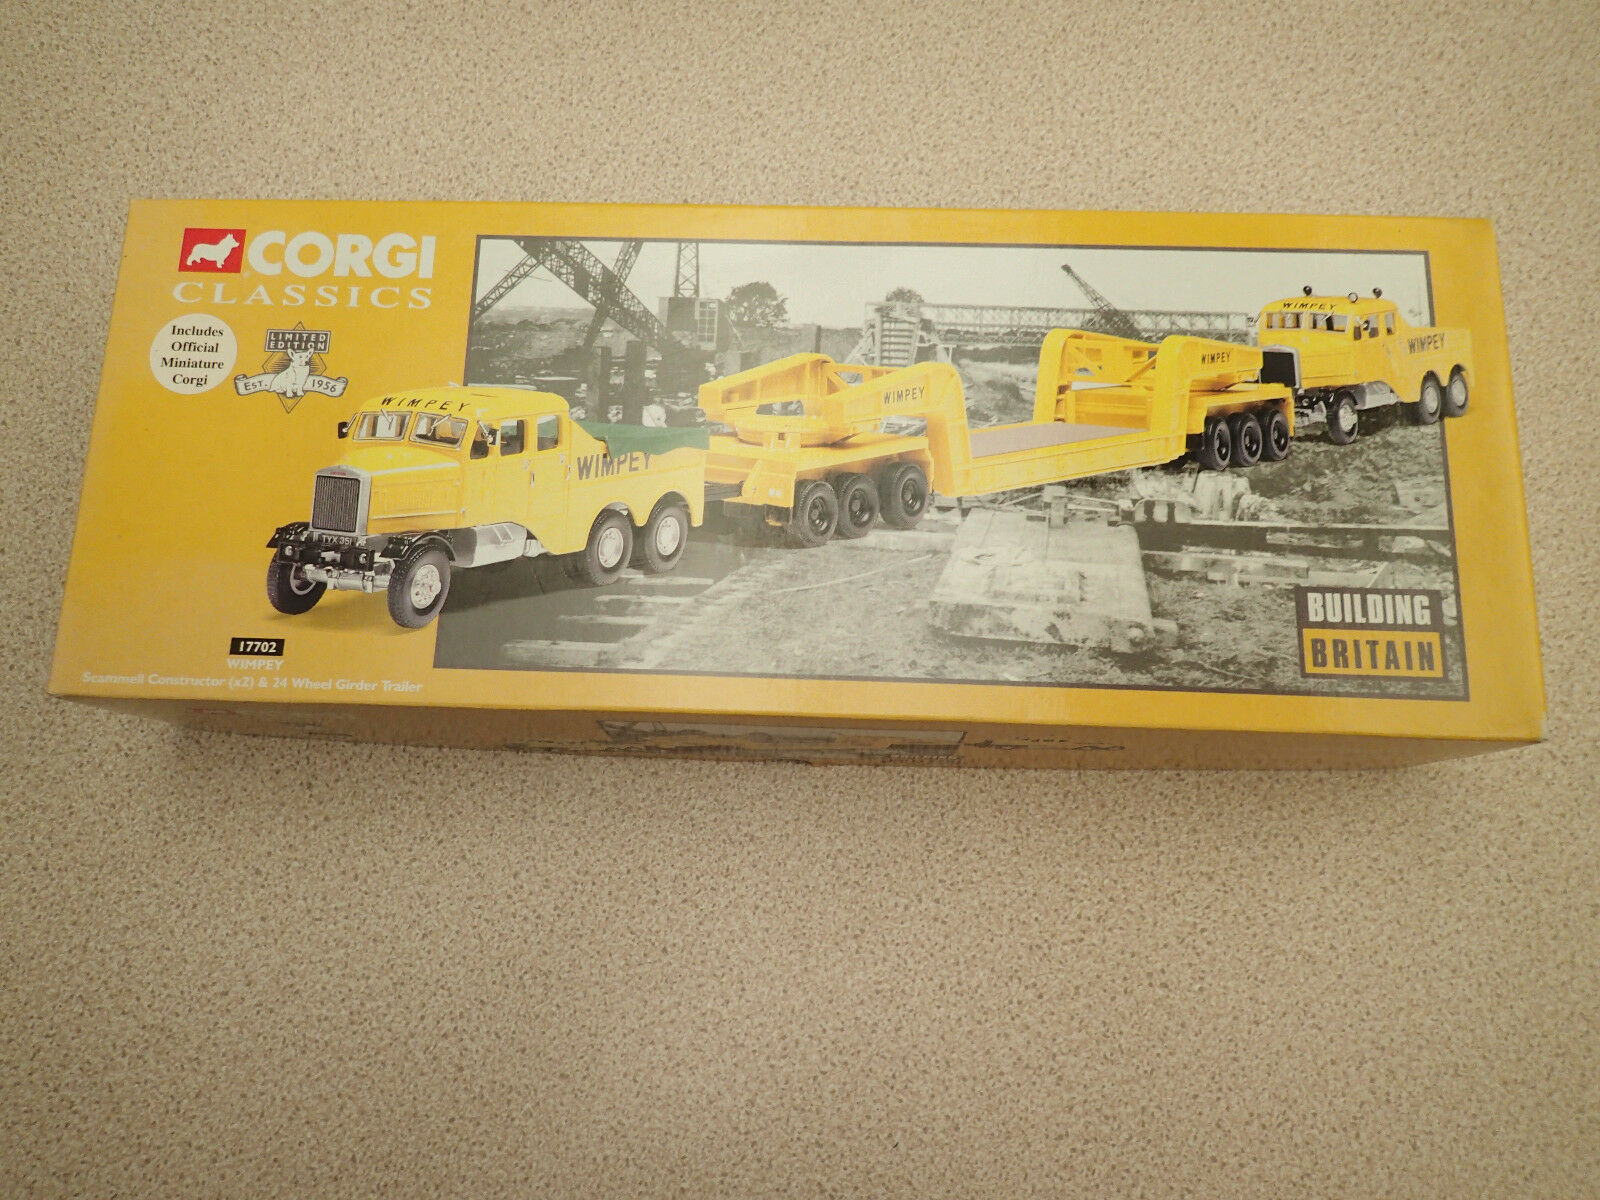 Corgi 1 50 17702 Scammell Constructor 24 Wheel Trailer Wimpey Untouched